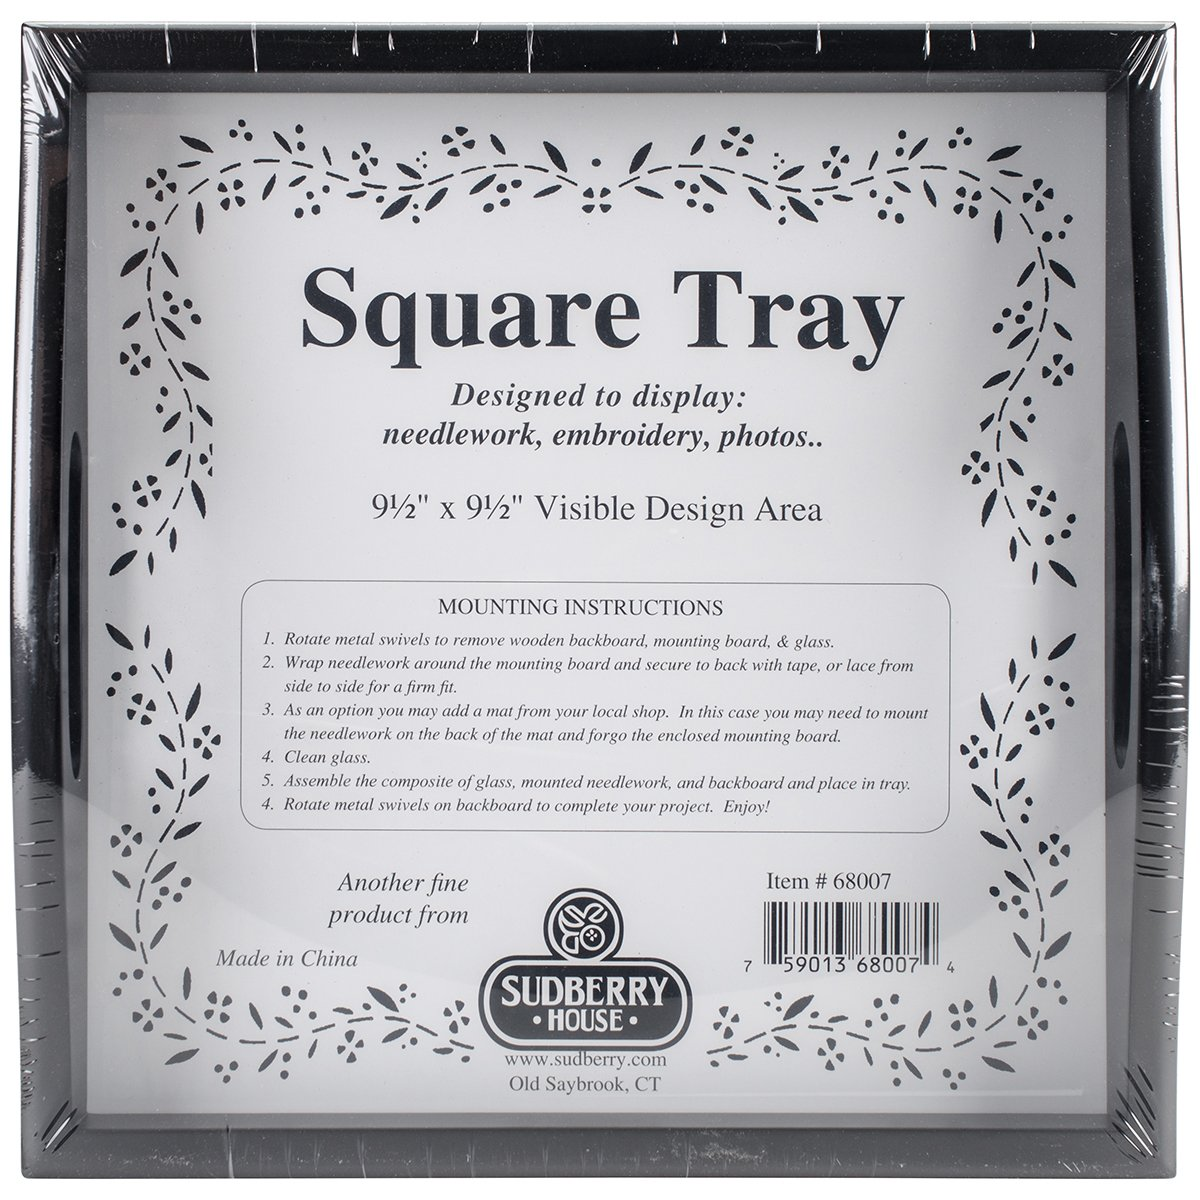 Sudberry House Small Square Tray, 10 x 10, Black by Sudberry House